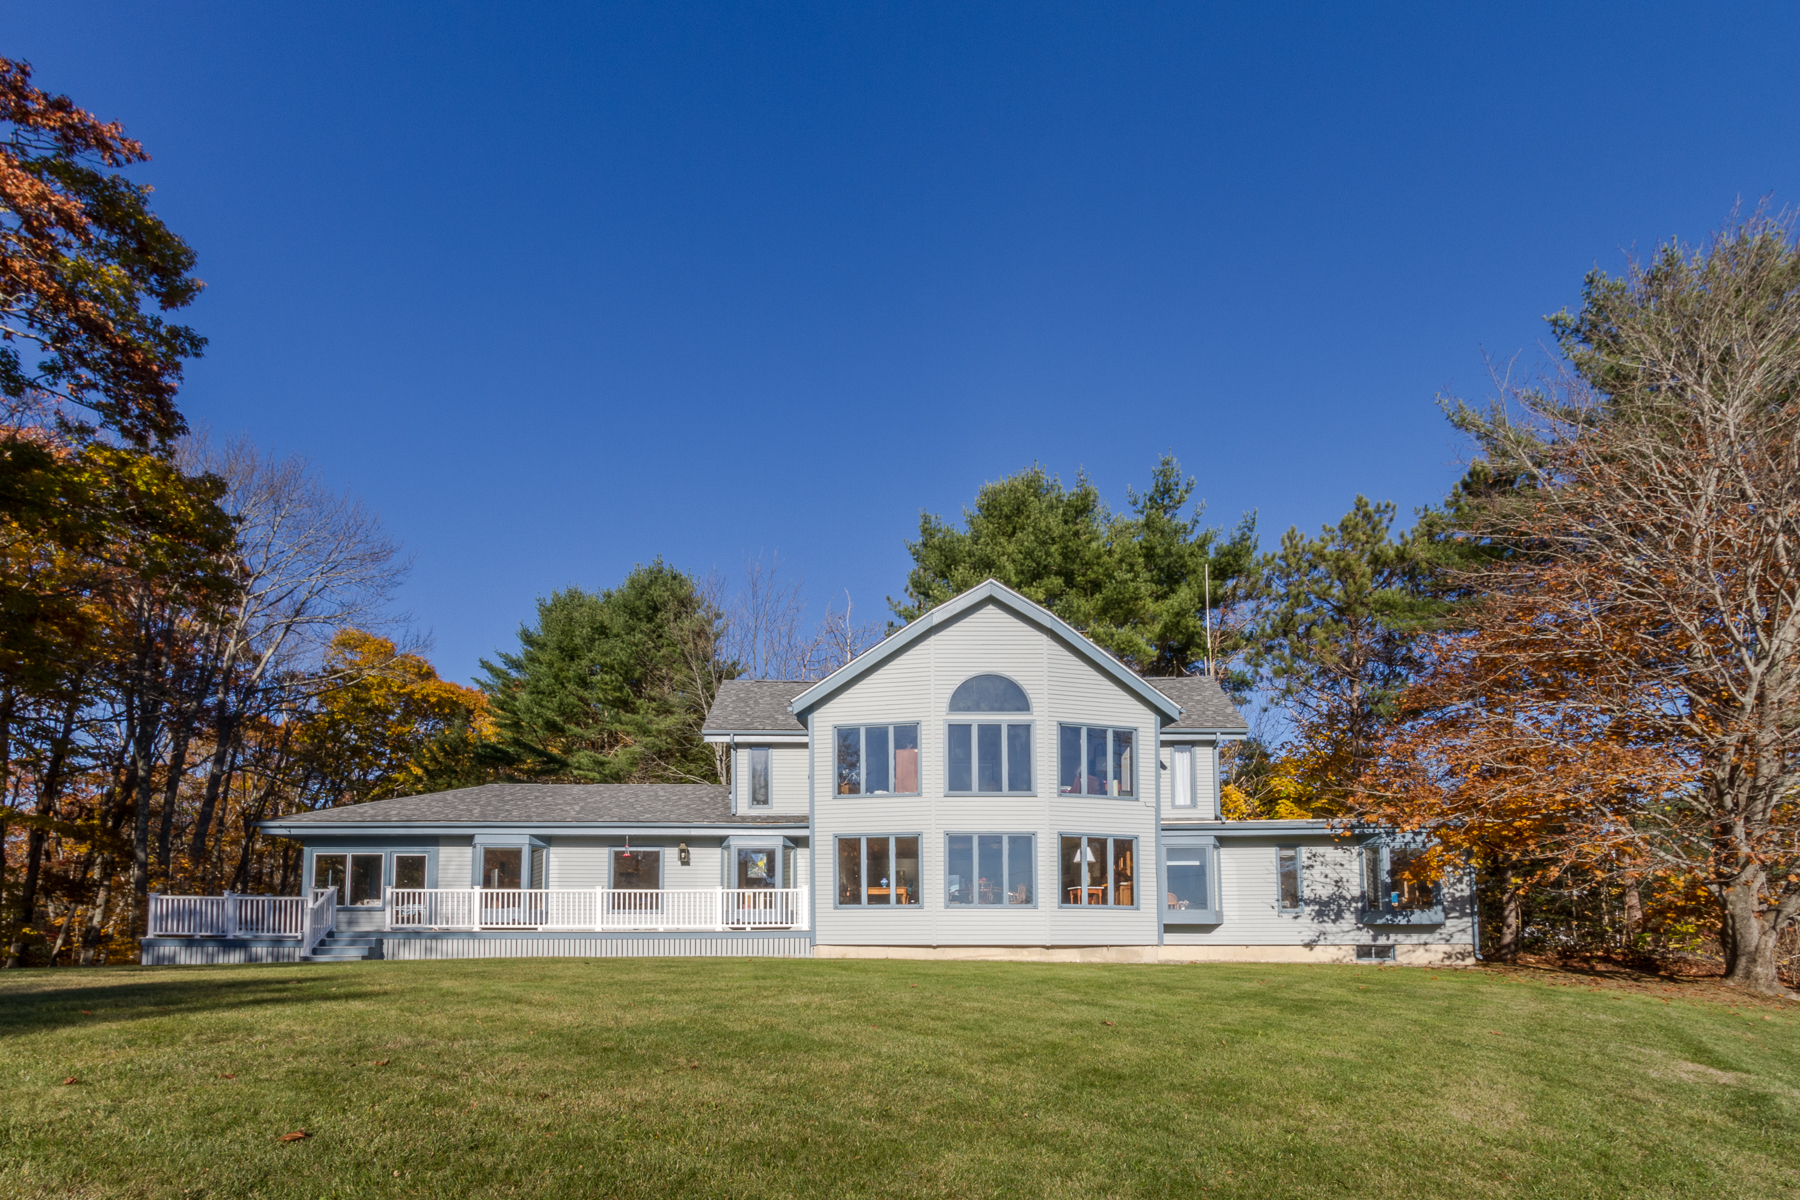 Single Family Home for Sale at West View Road 53 Westview Road Damariscotta, Maine 04543 United States